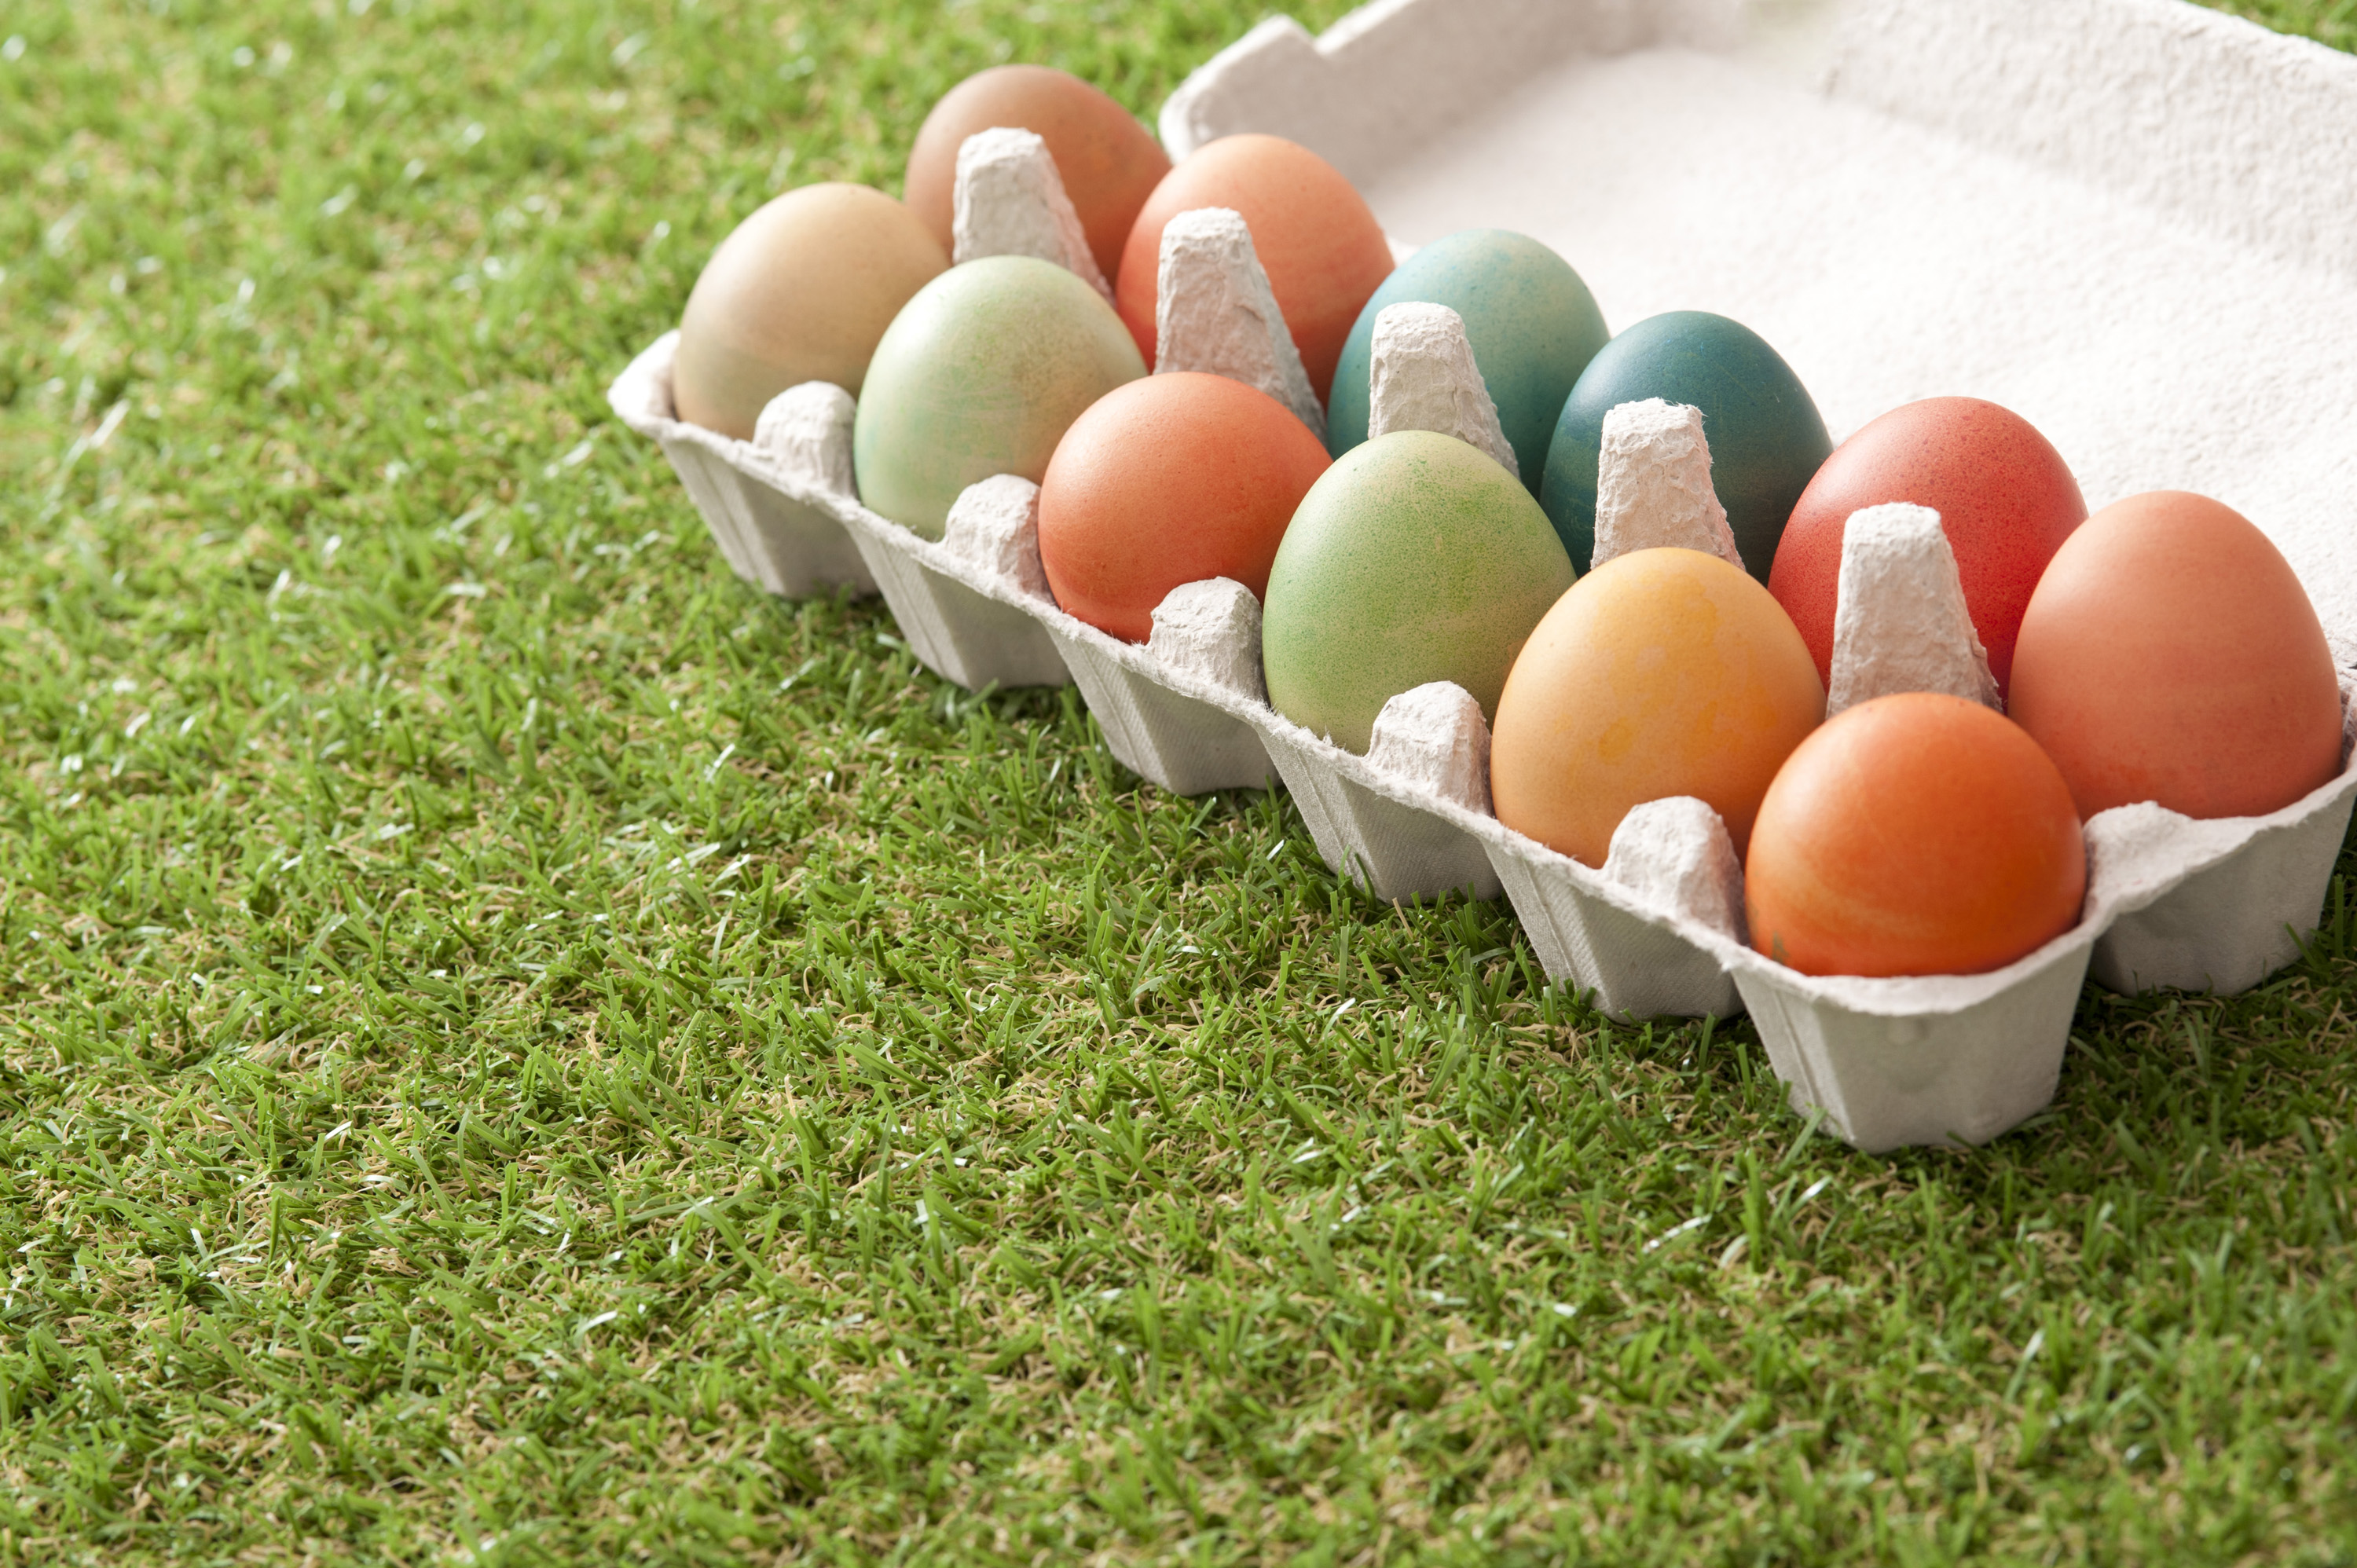 coloured_eggs.jpg - Cardboard carton full of colorful dyed hard boiled Easter eggs on neat short green spring grass with copy space for your greeting